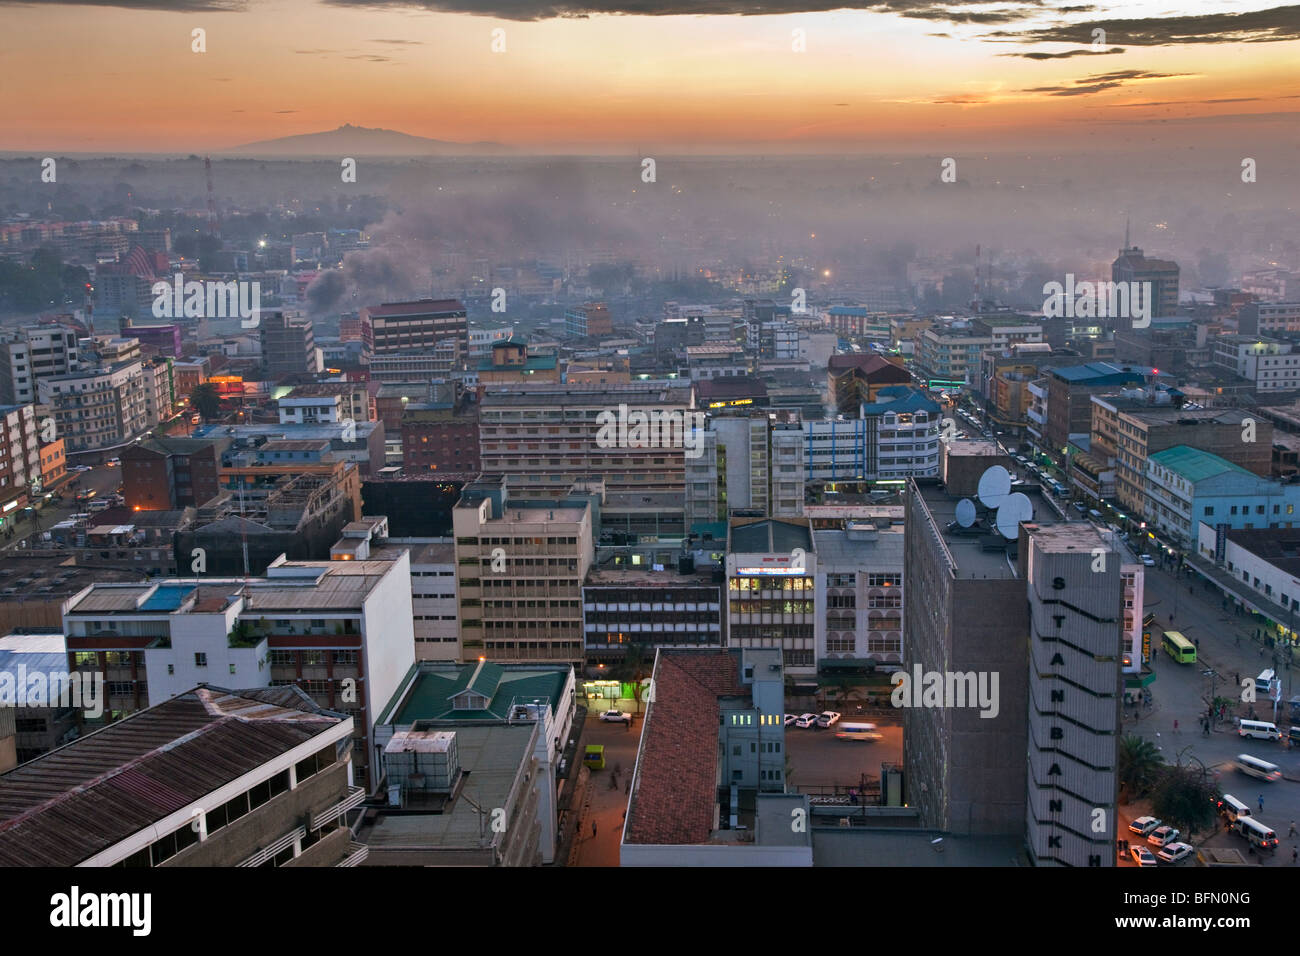 Kenya, Nairobi. Nairobi at daybreak with Mount Kenya rising in the far distance. - Stock Image